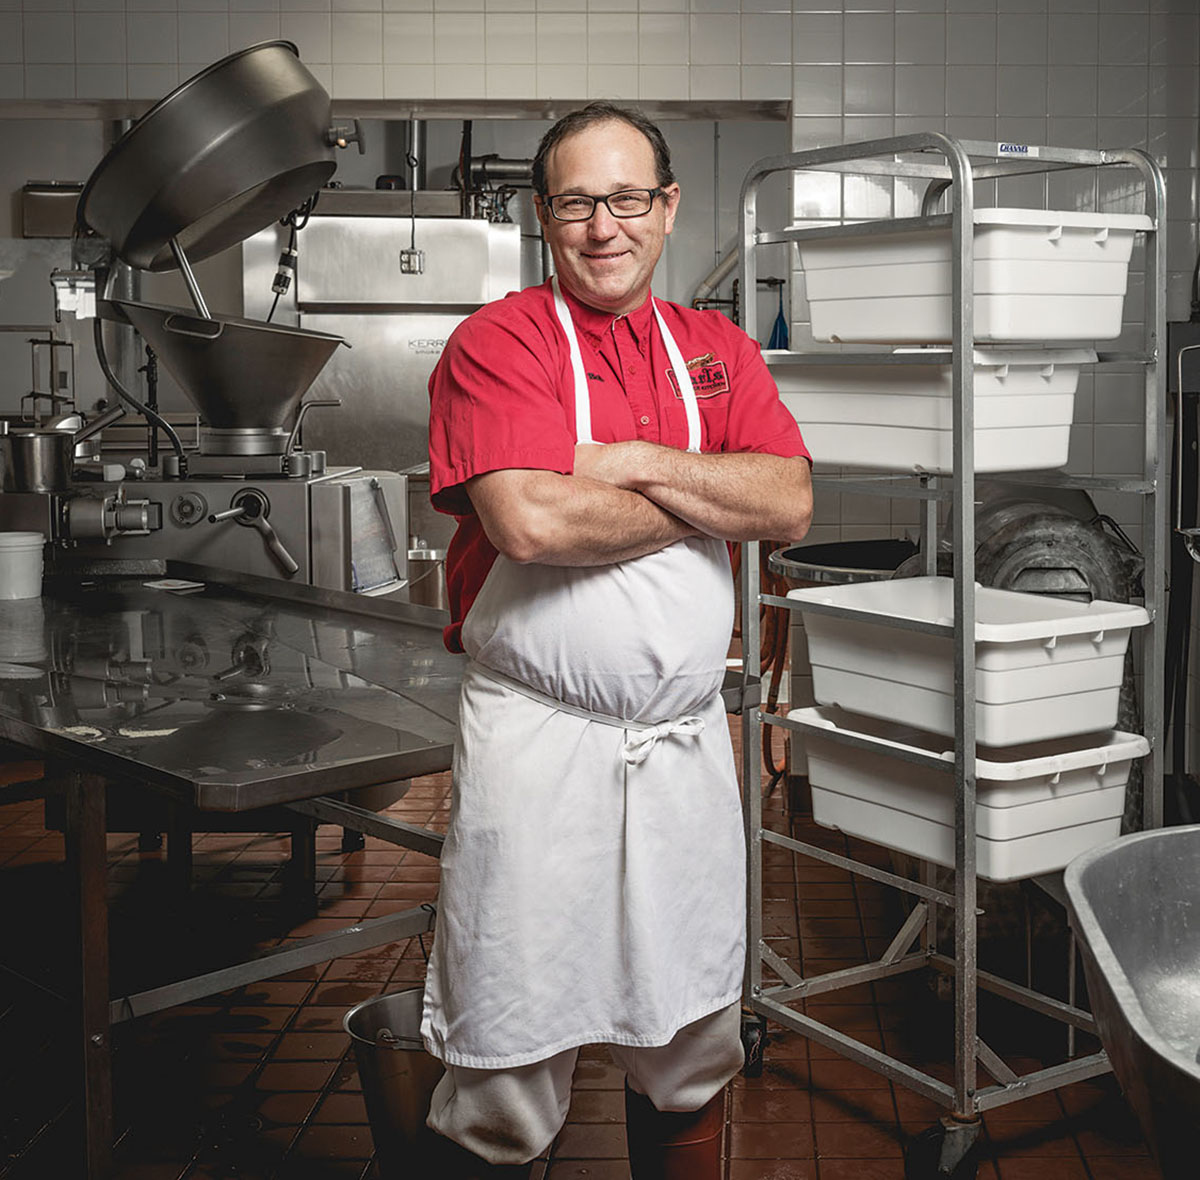 Co-owner Bob Gokey shows off the sausage-making arsenal inside Karl's kitchen. Photo by Toan Trinh.